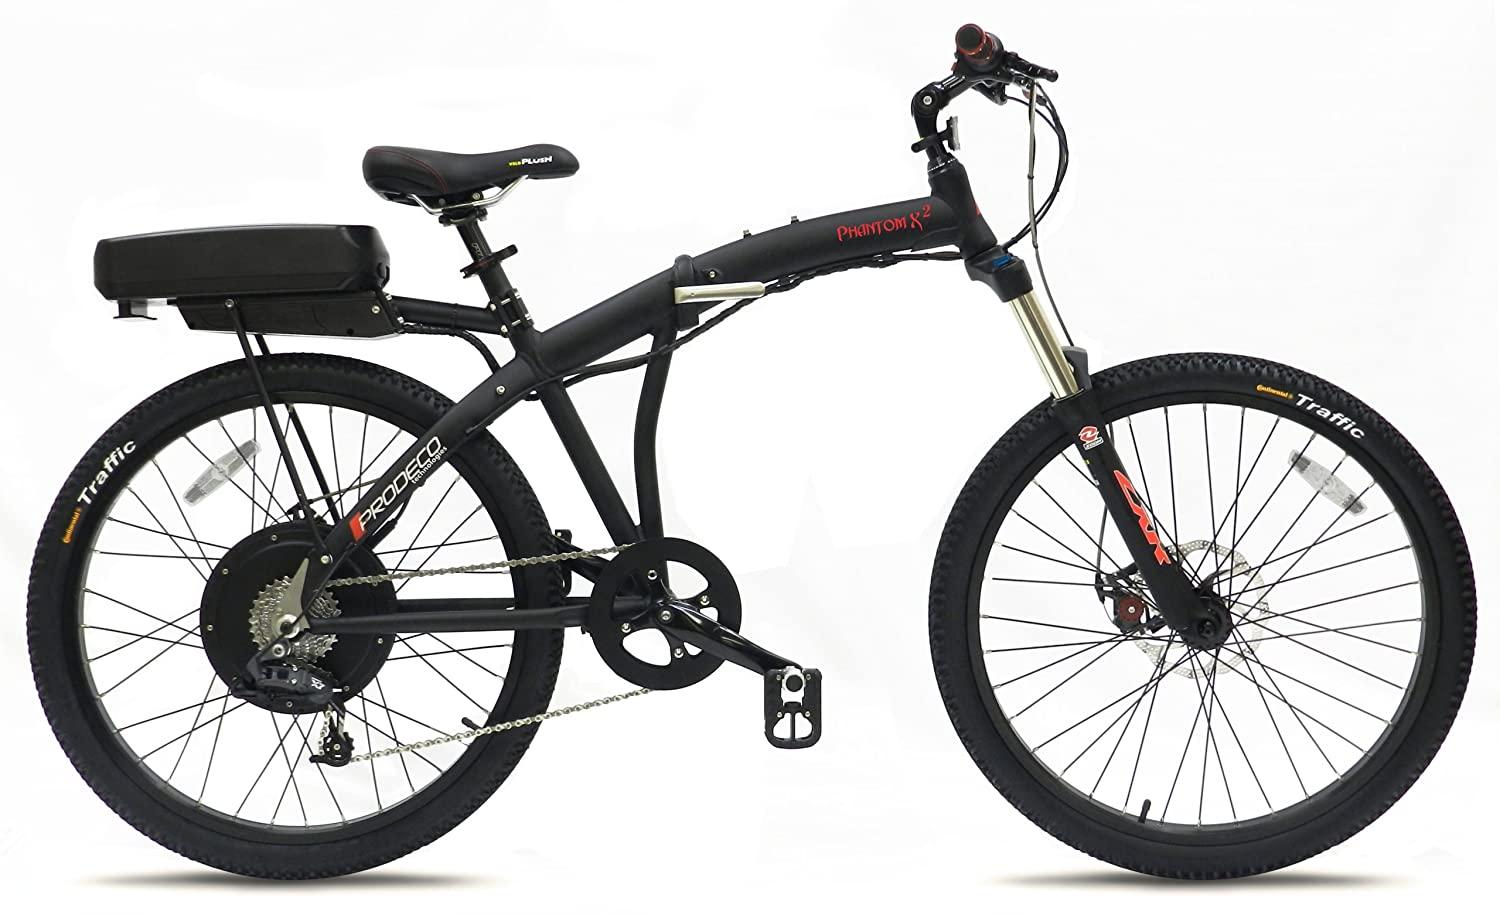 Prodeco V5 Phantom X2 8 Speed Folding Electric Bike Review